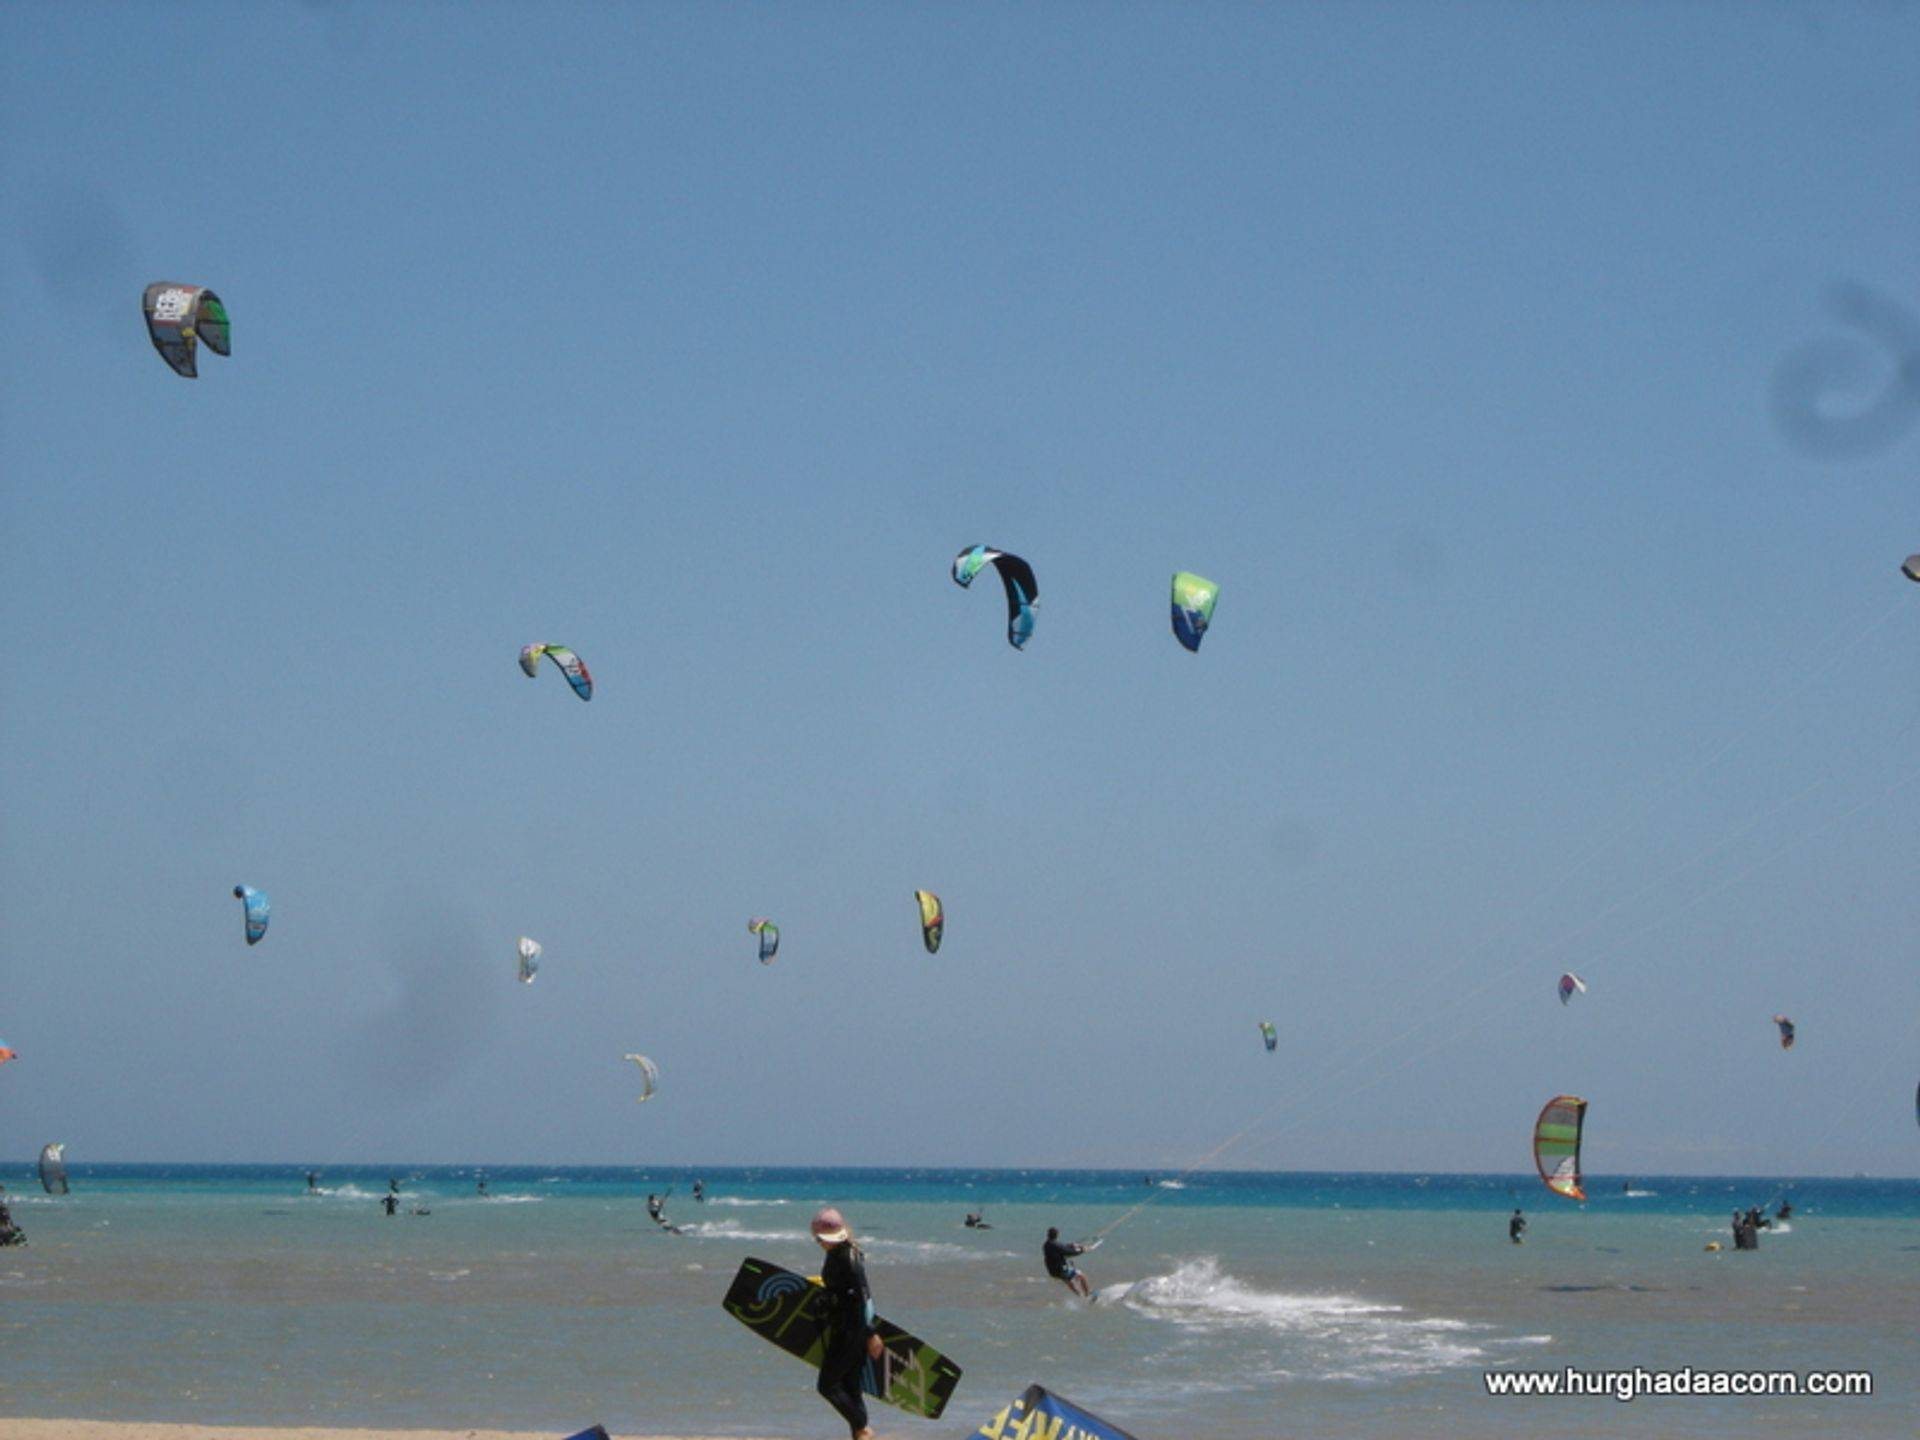 Kite Surfing in Hurghada